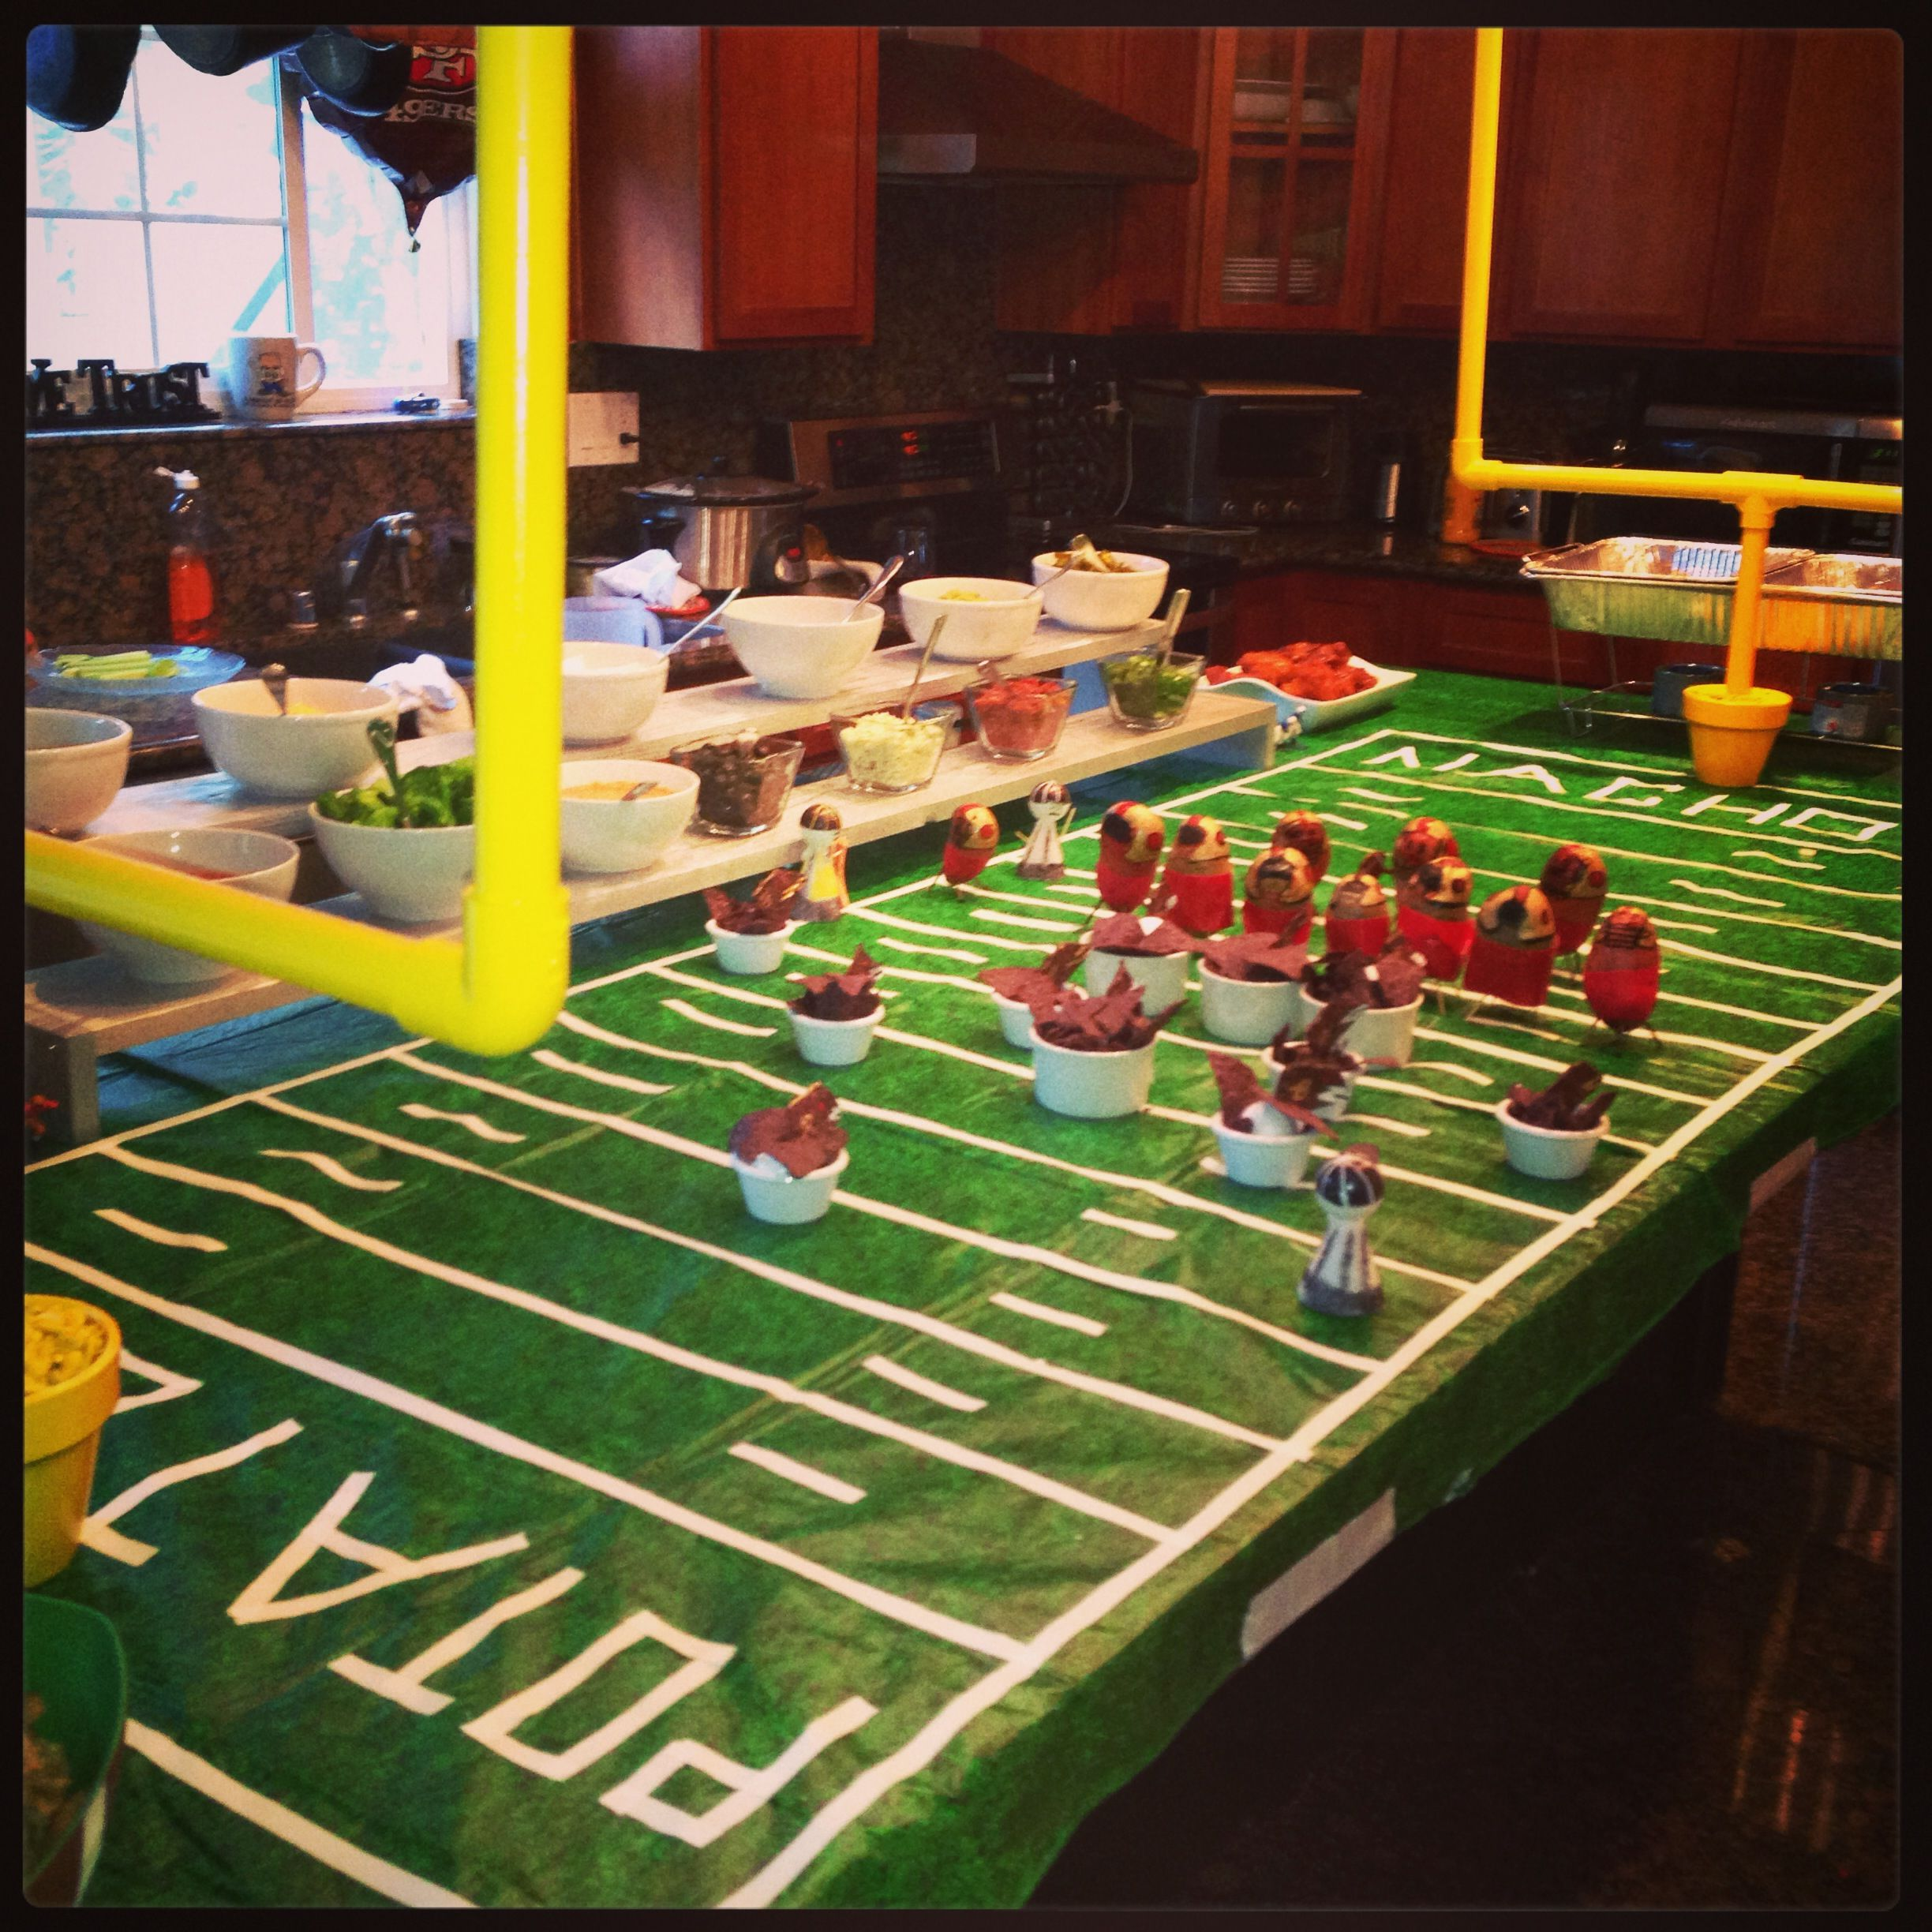 Super Bowl or footba